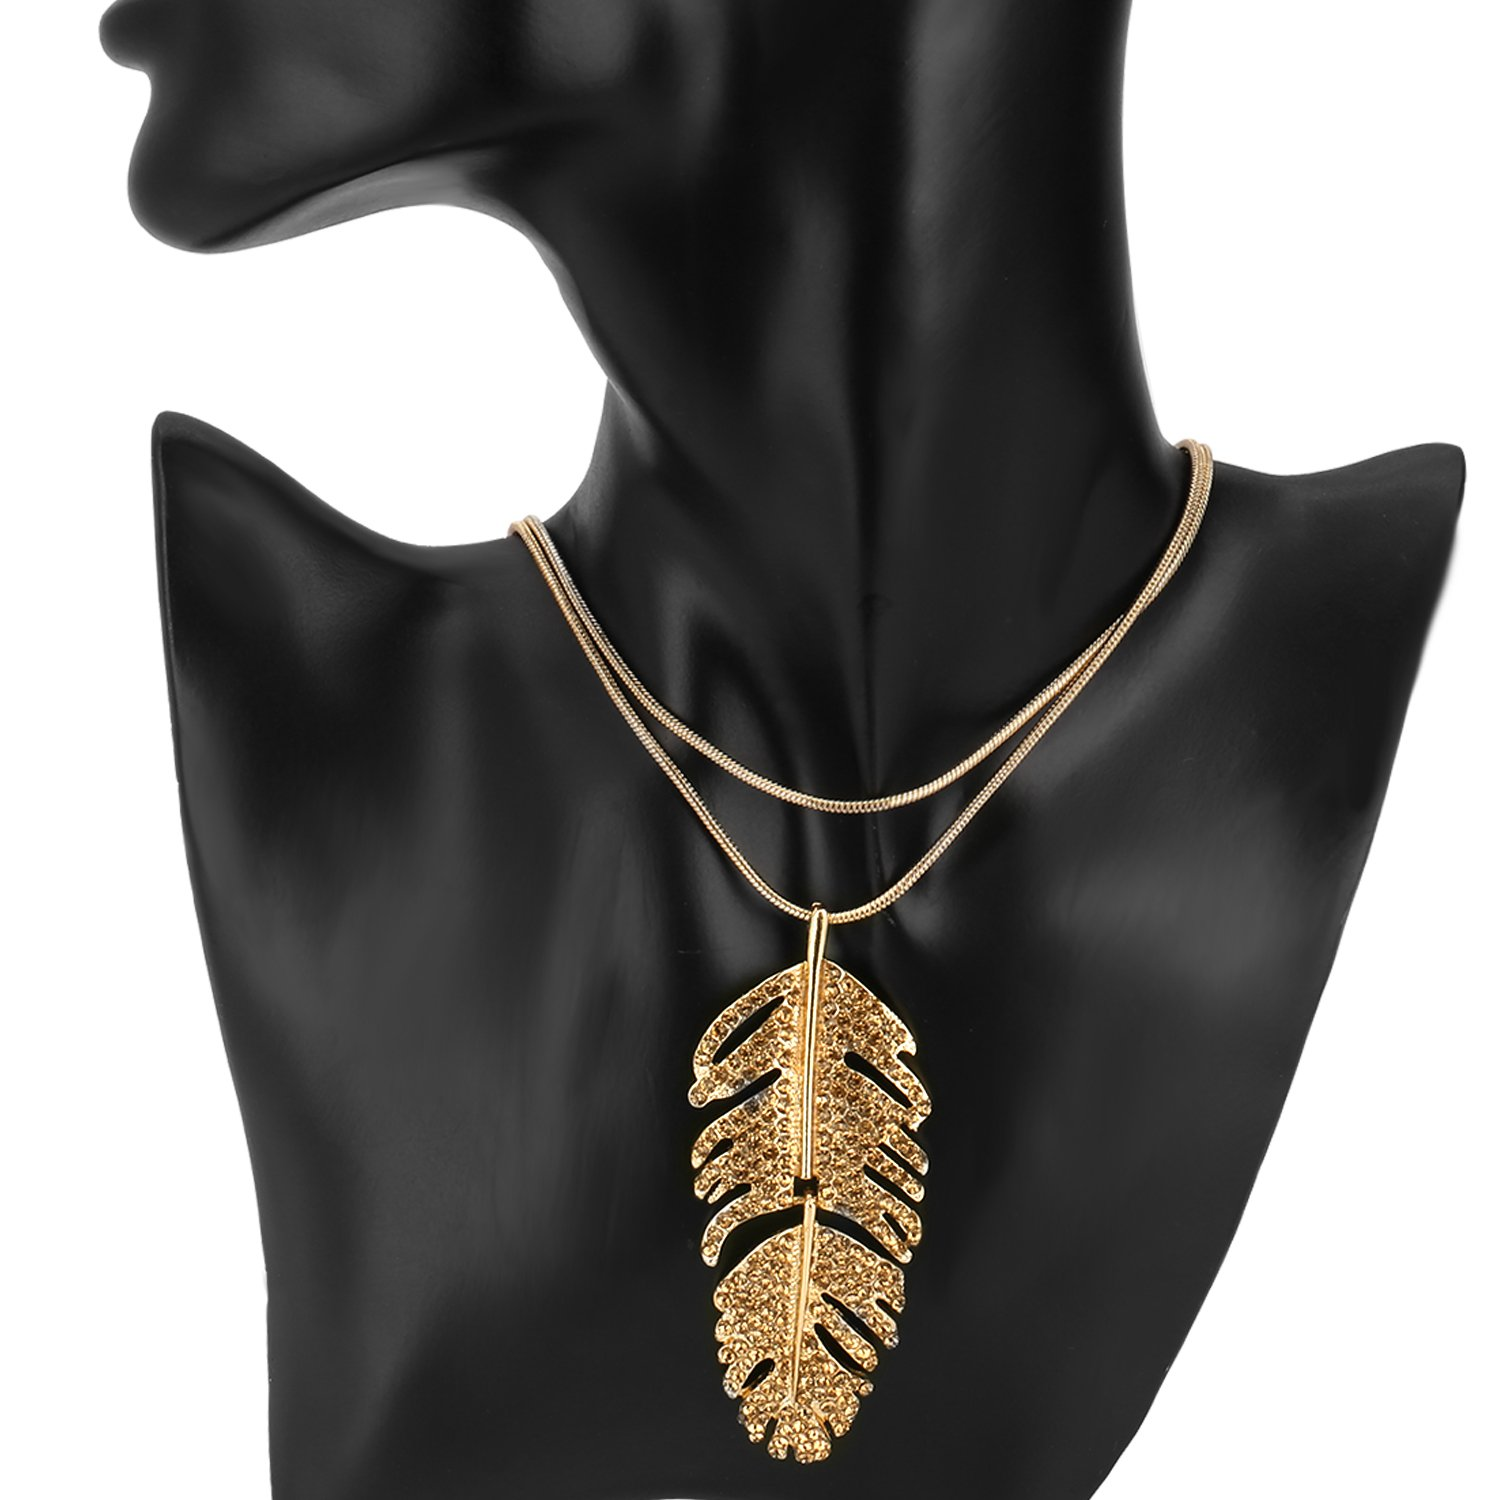 Pendant Necklace, UHIBROS Feather Pendant Choker necklace with pendant Wing choker necklace with pendant necklace (Gold)